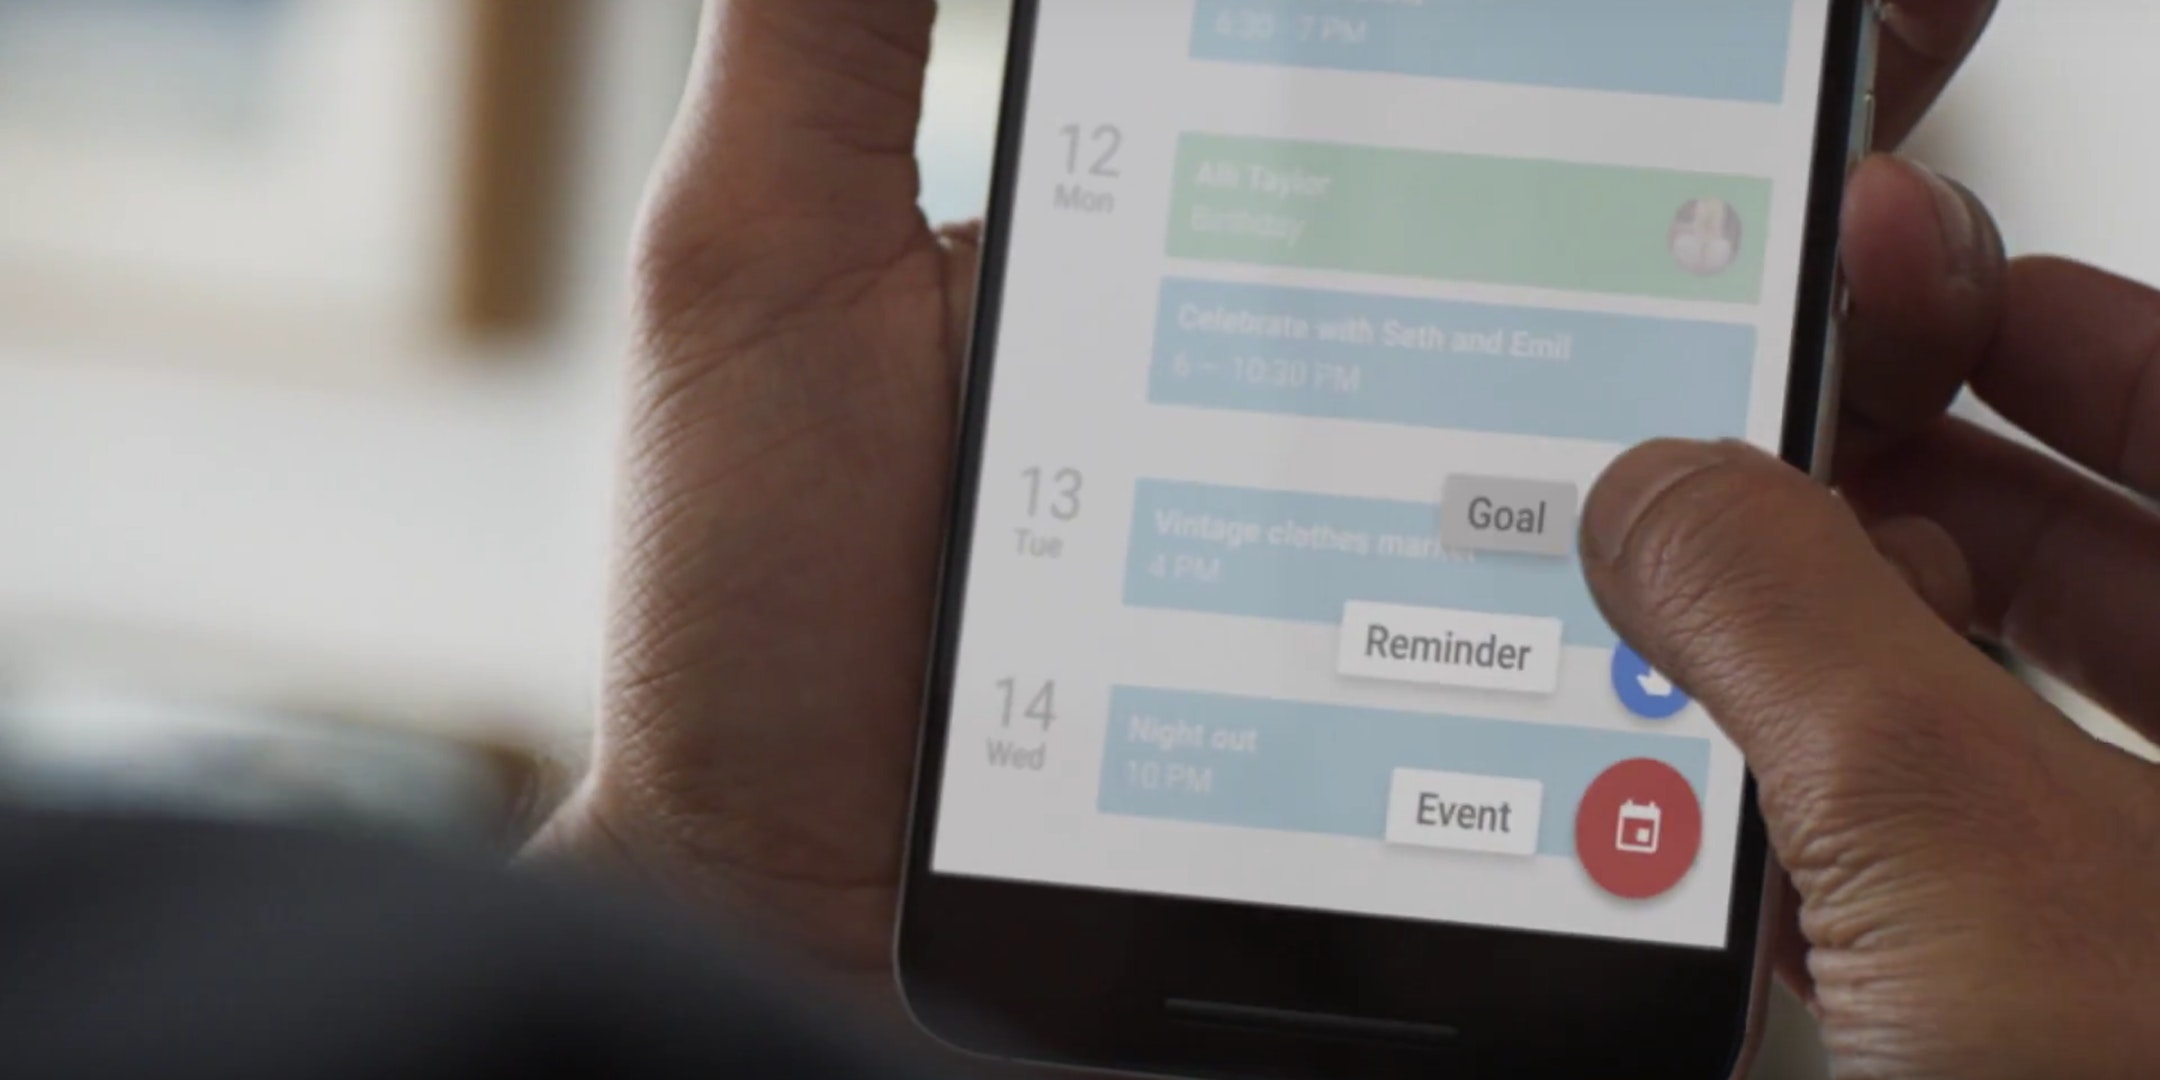 Google's Calendar Goals Falls Short of Actually Being #Goals